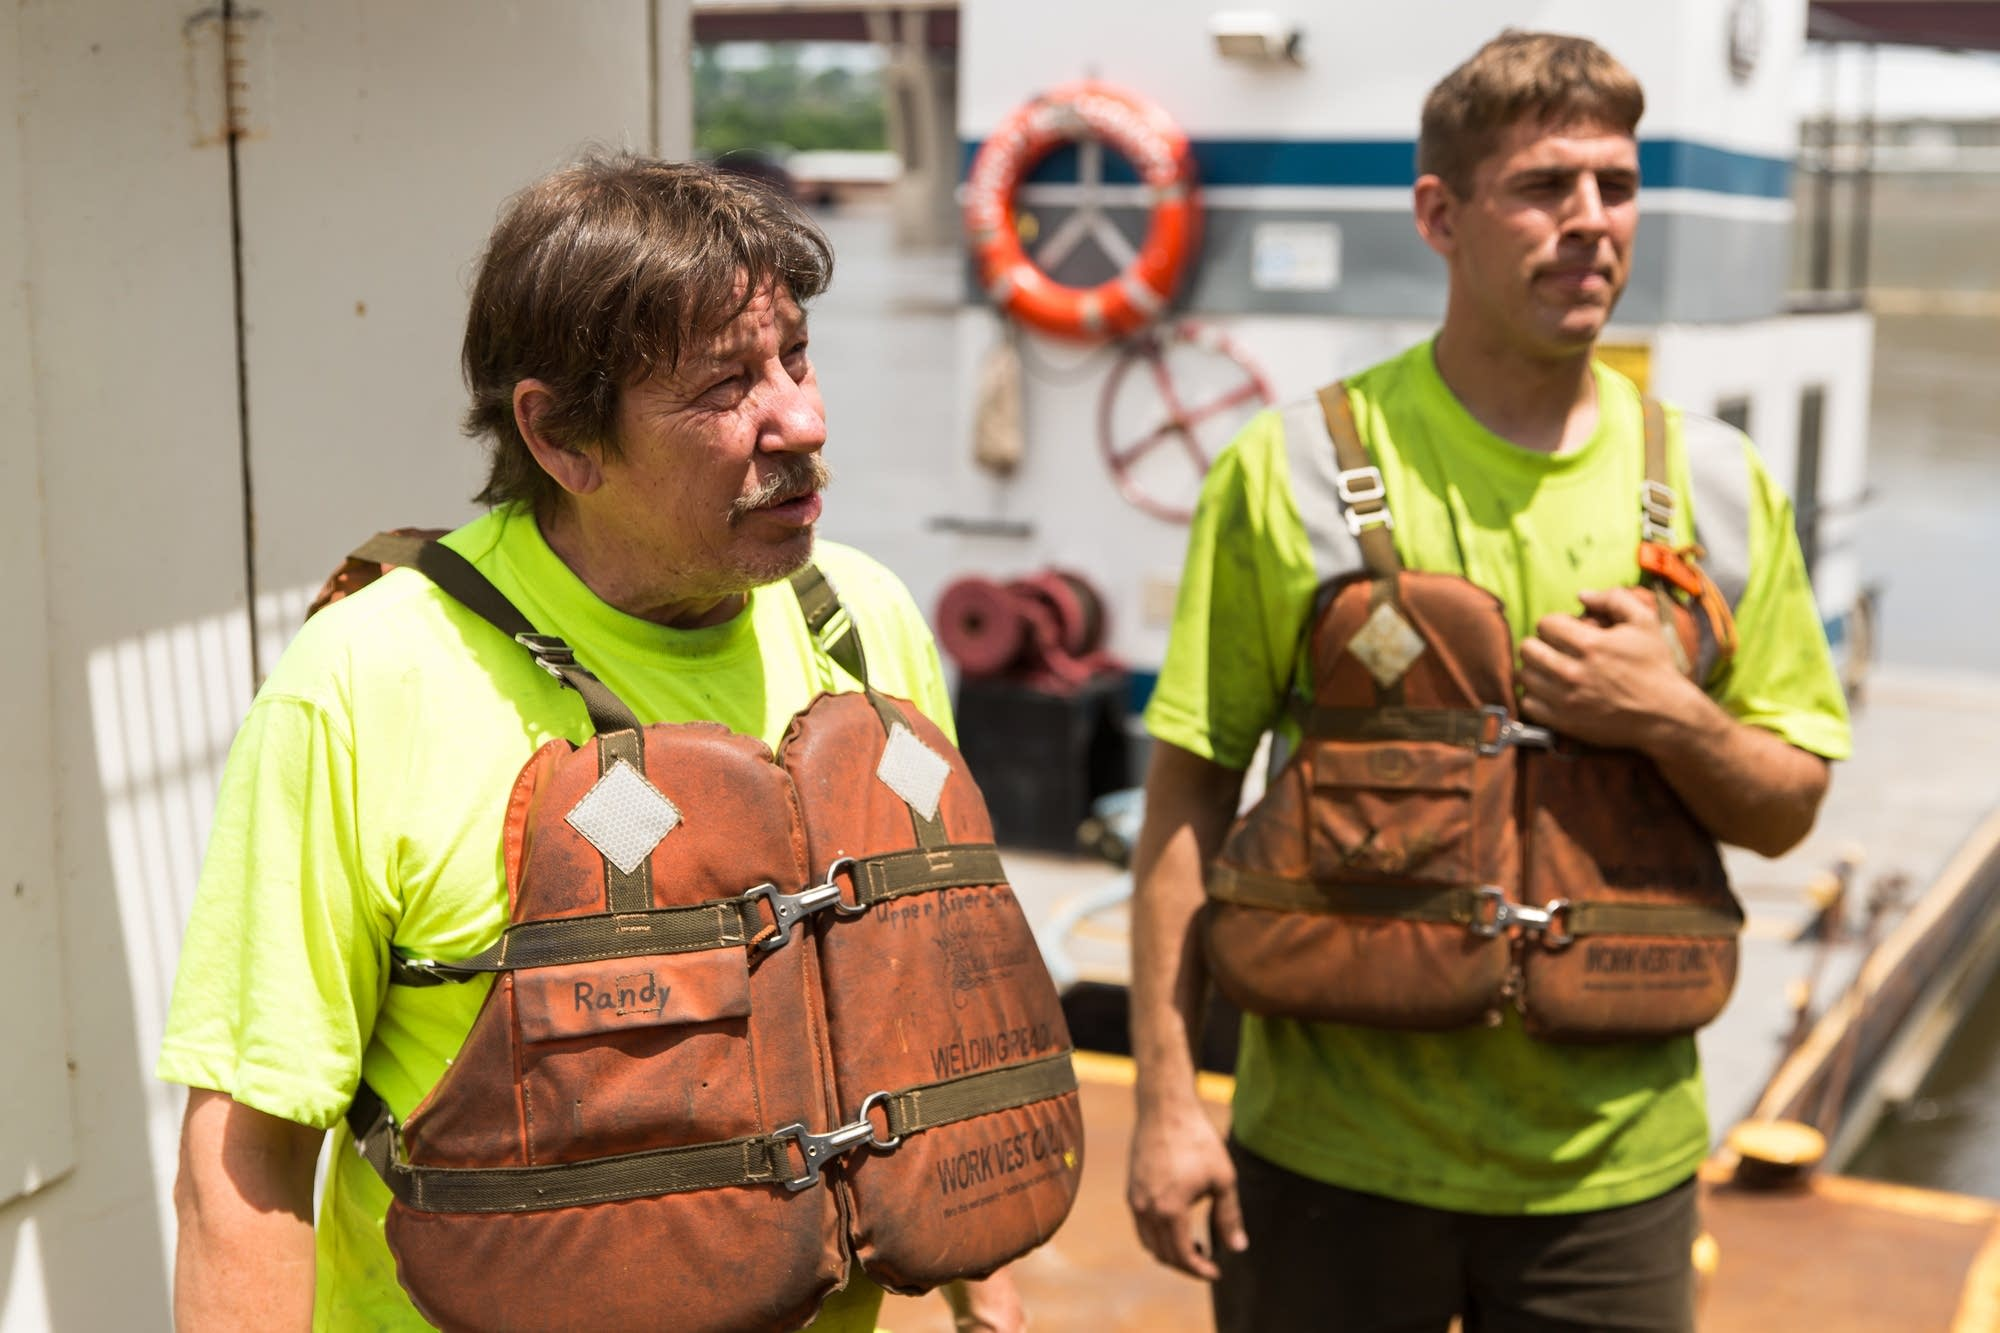 Randy Kohl and Ben Brooks stand on the vessel used in Thursday's rescue.